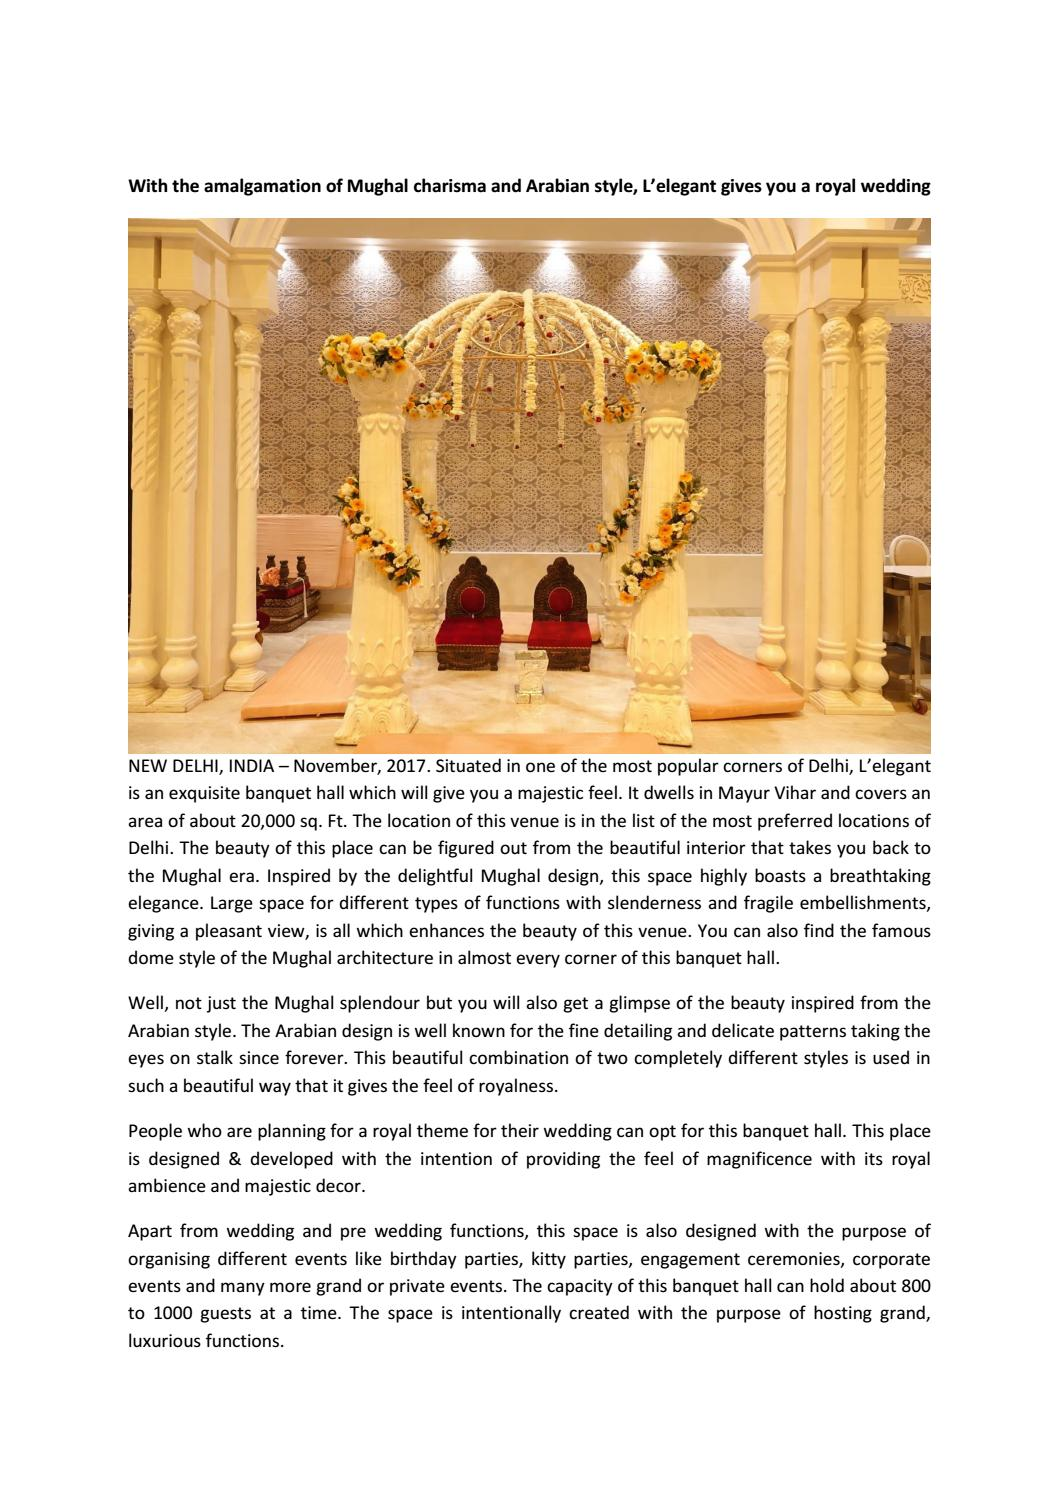 Elegant Banquet Hall Delhi by leelegantdelhi - issuu